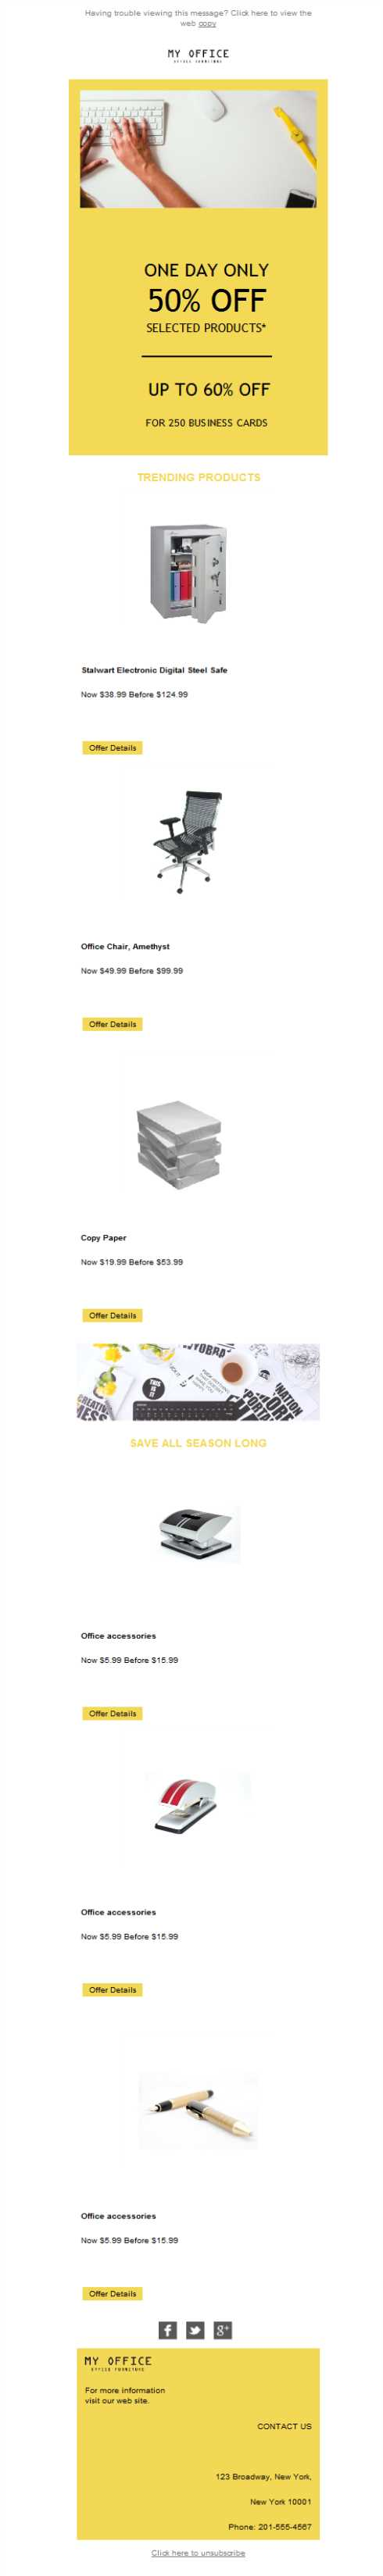 Templates Emailing Office Equipment Sales Sarbacane